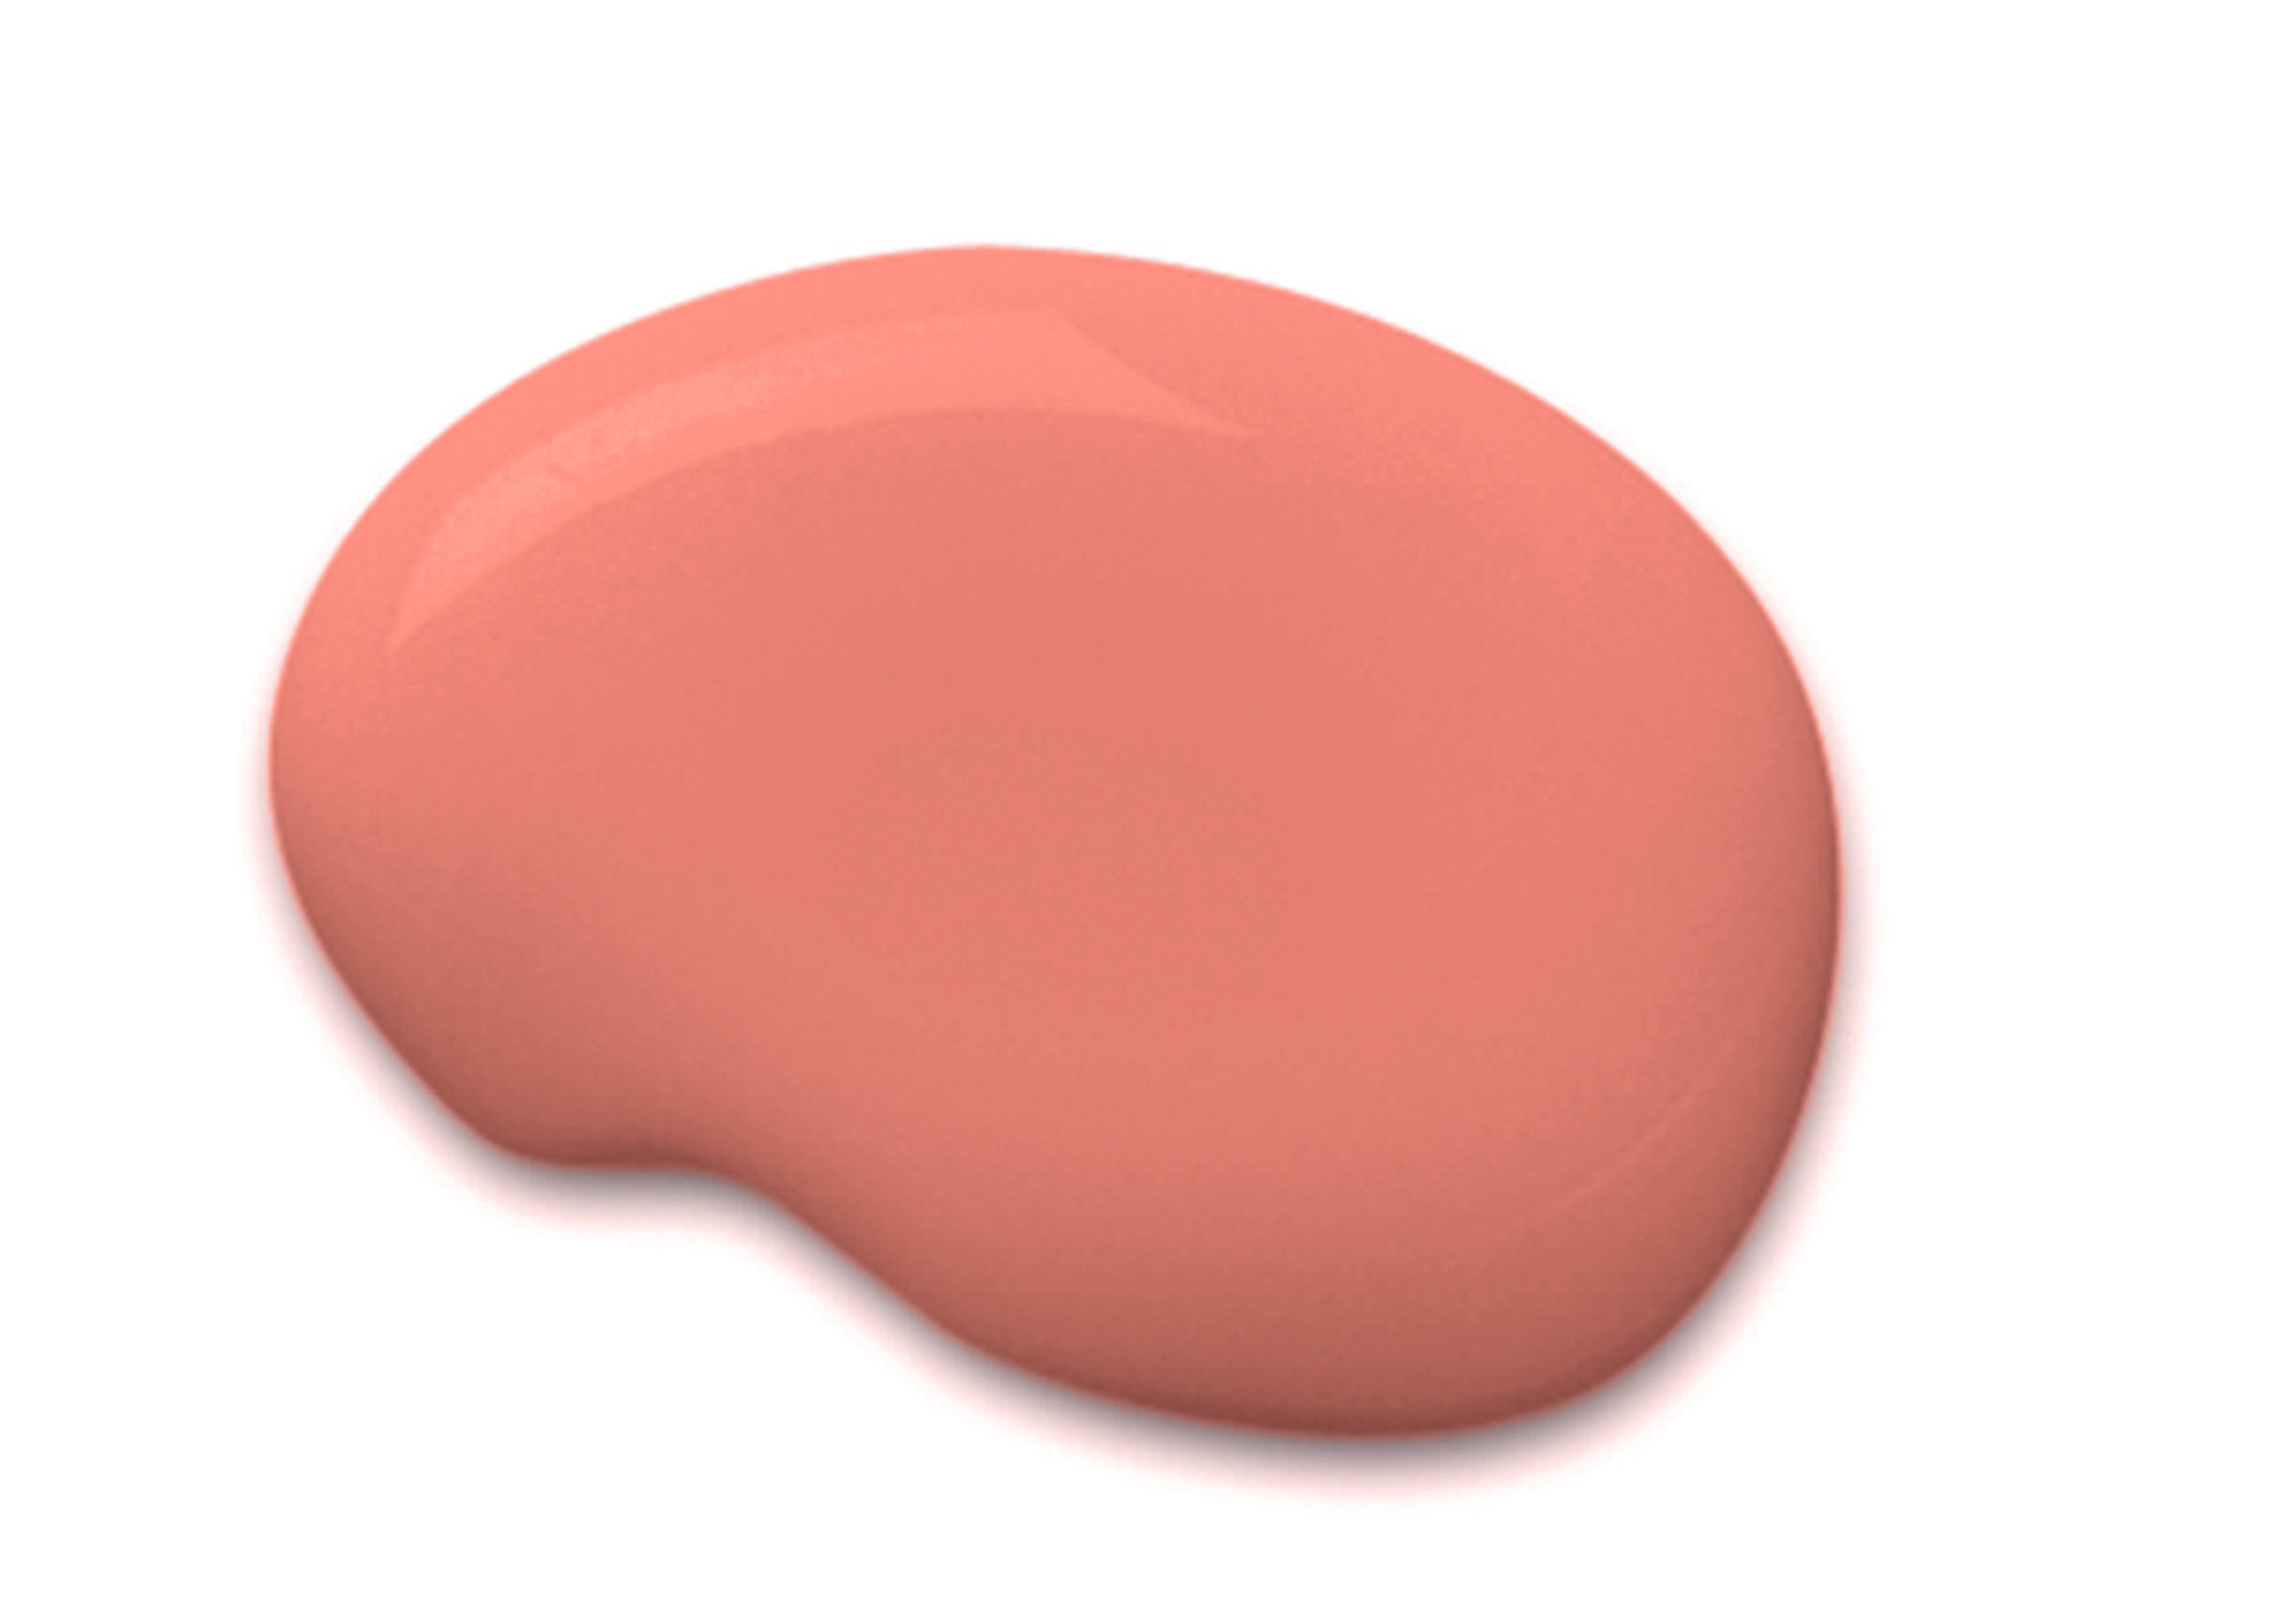 Coral Reef Paint Color Sherwin Williams Announces Color Of The Year 2015